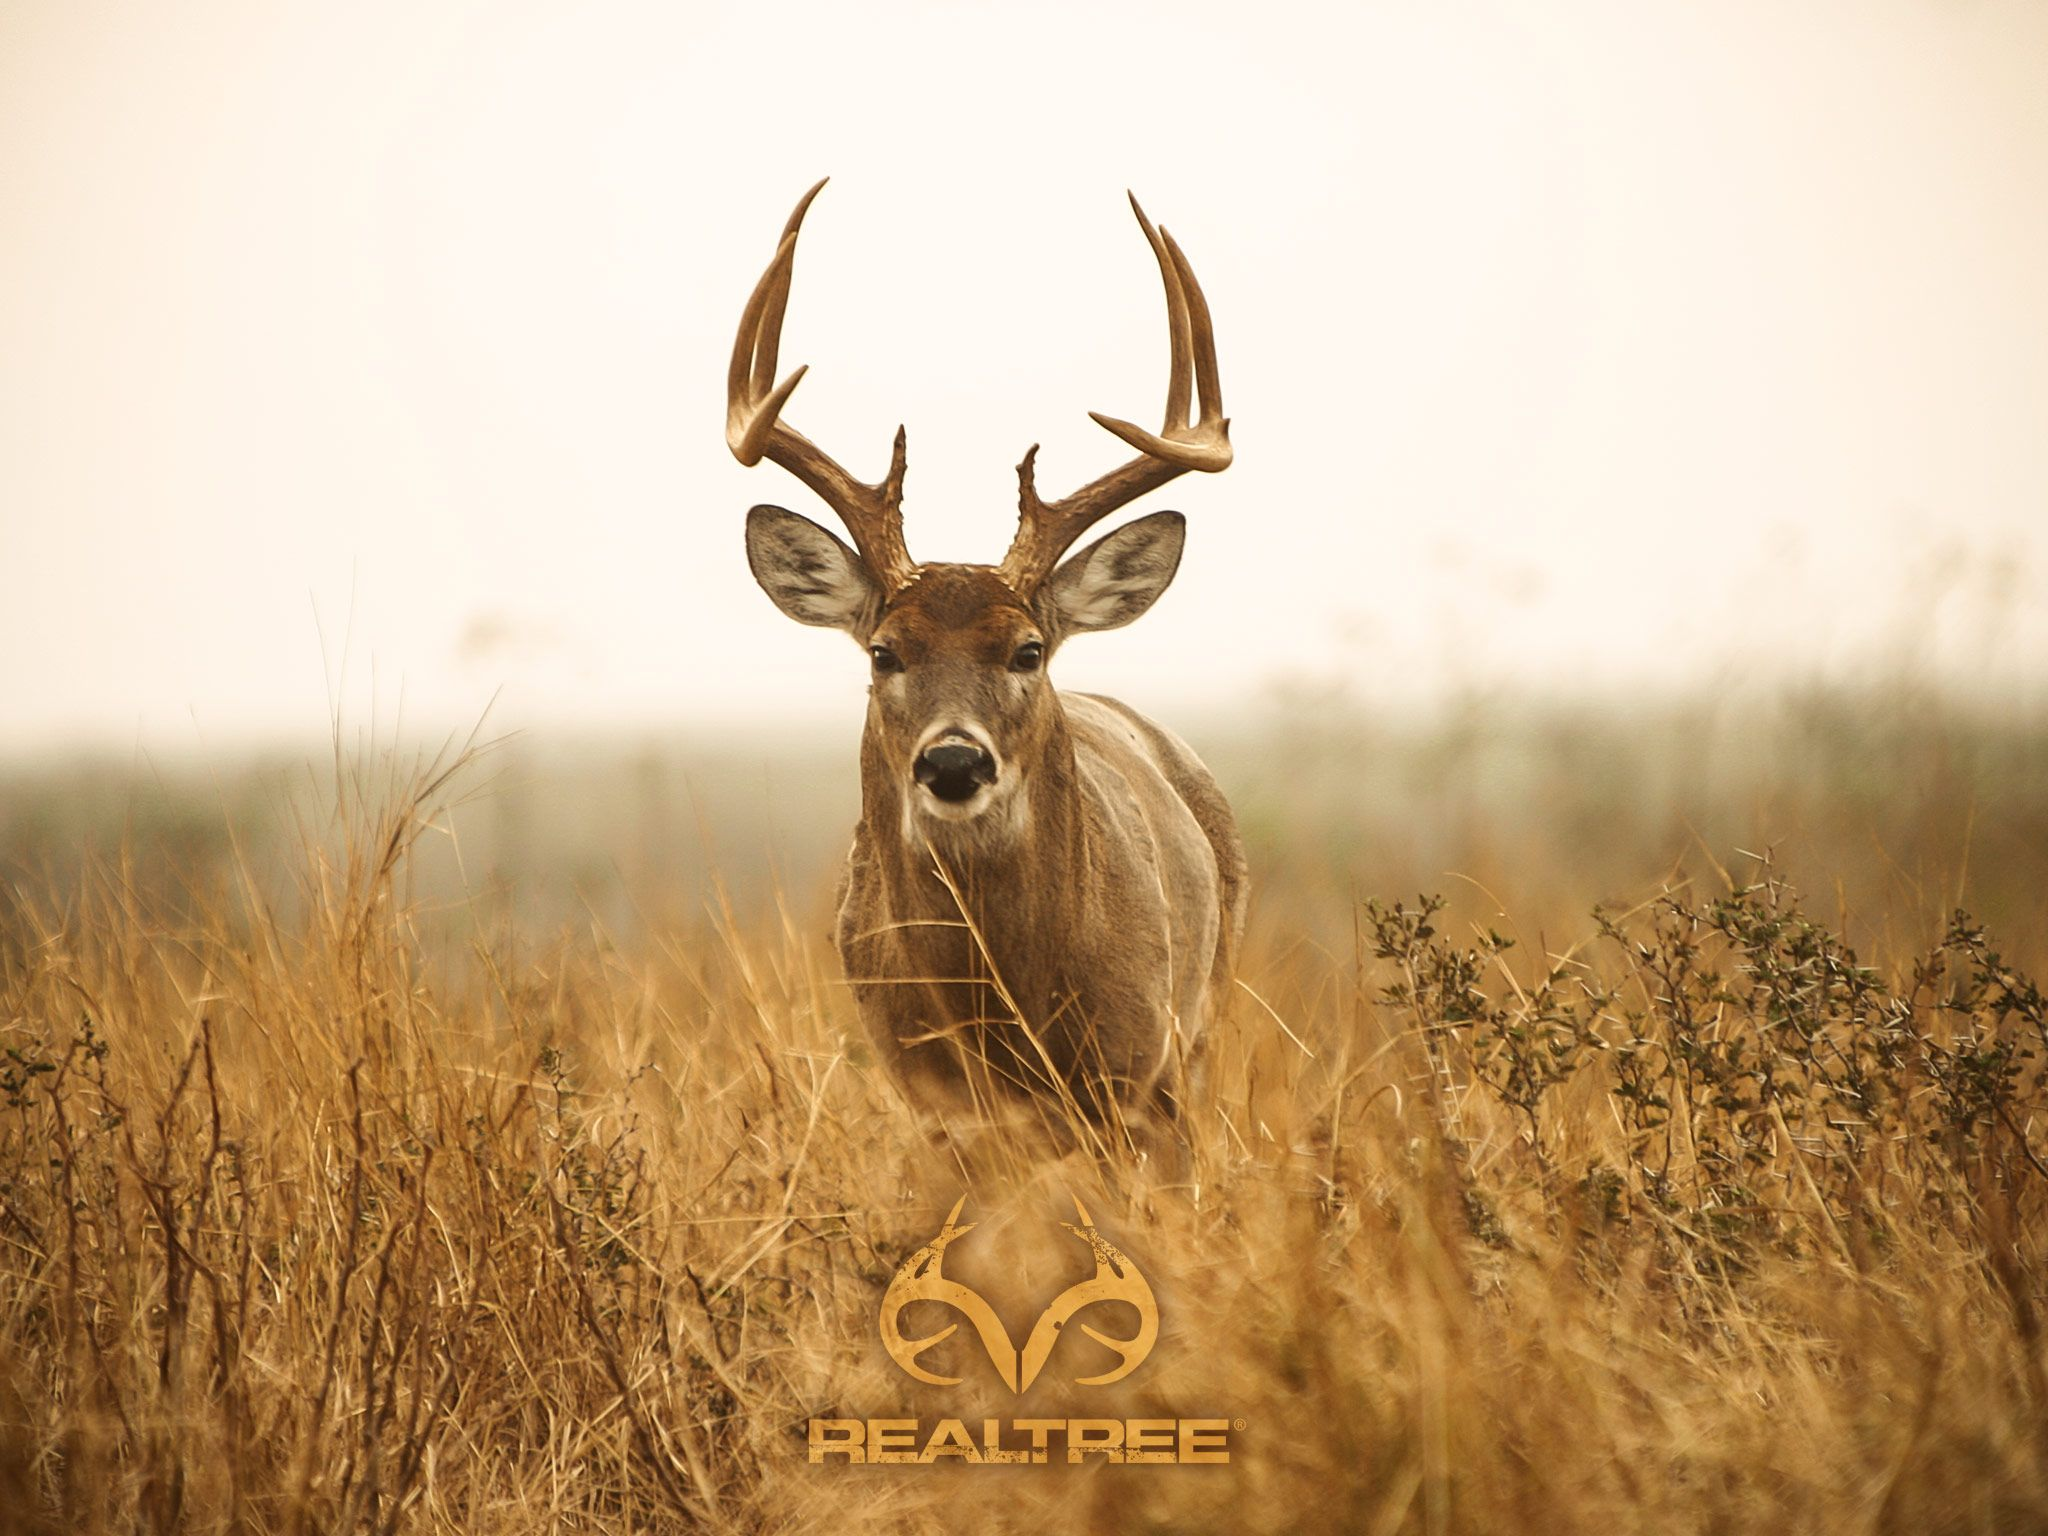 Realtree Buck Wallpapers   Top Realtree Buck Backgrounds 2048x1536